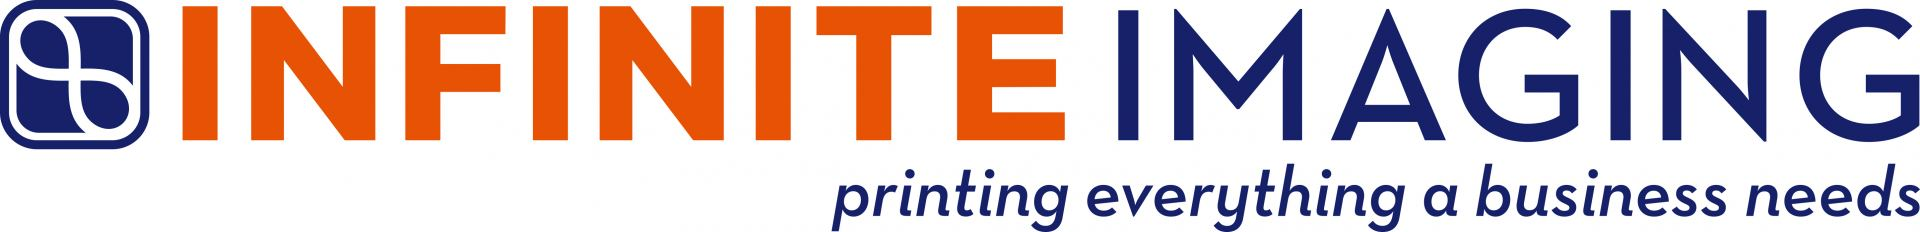 Infinite Imaging_Logo_long_tagline